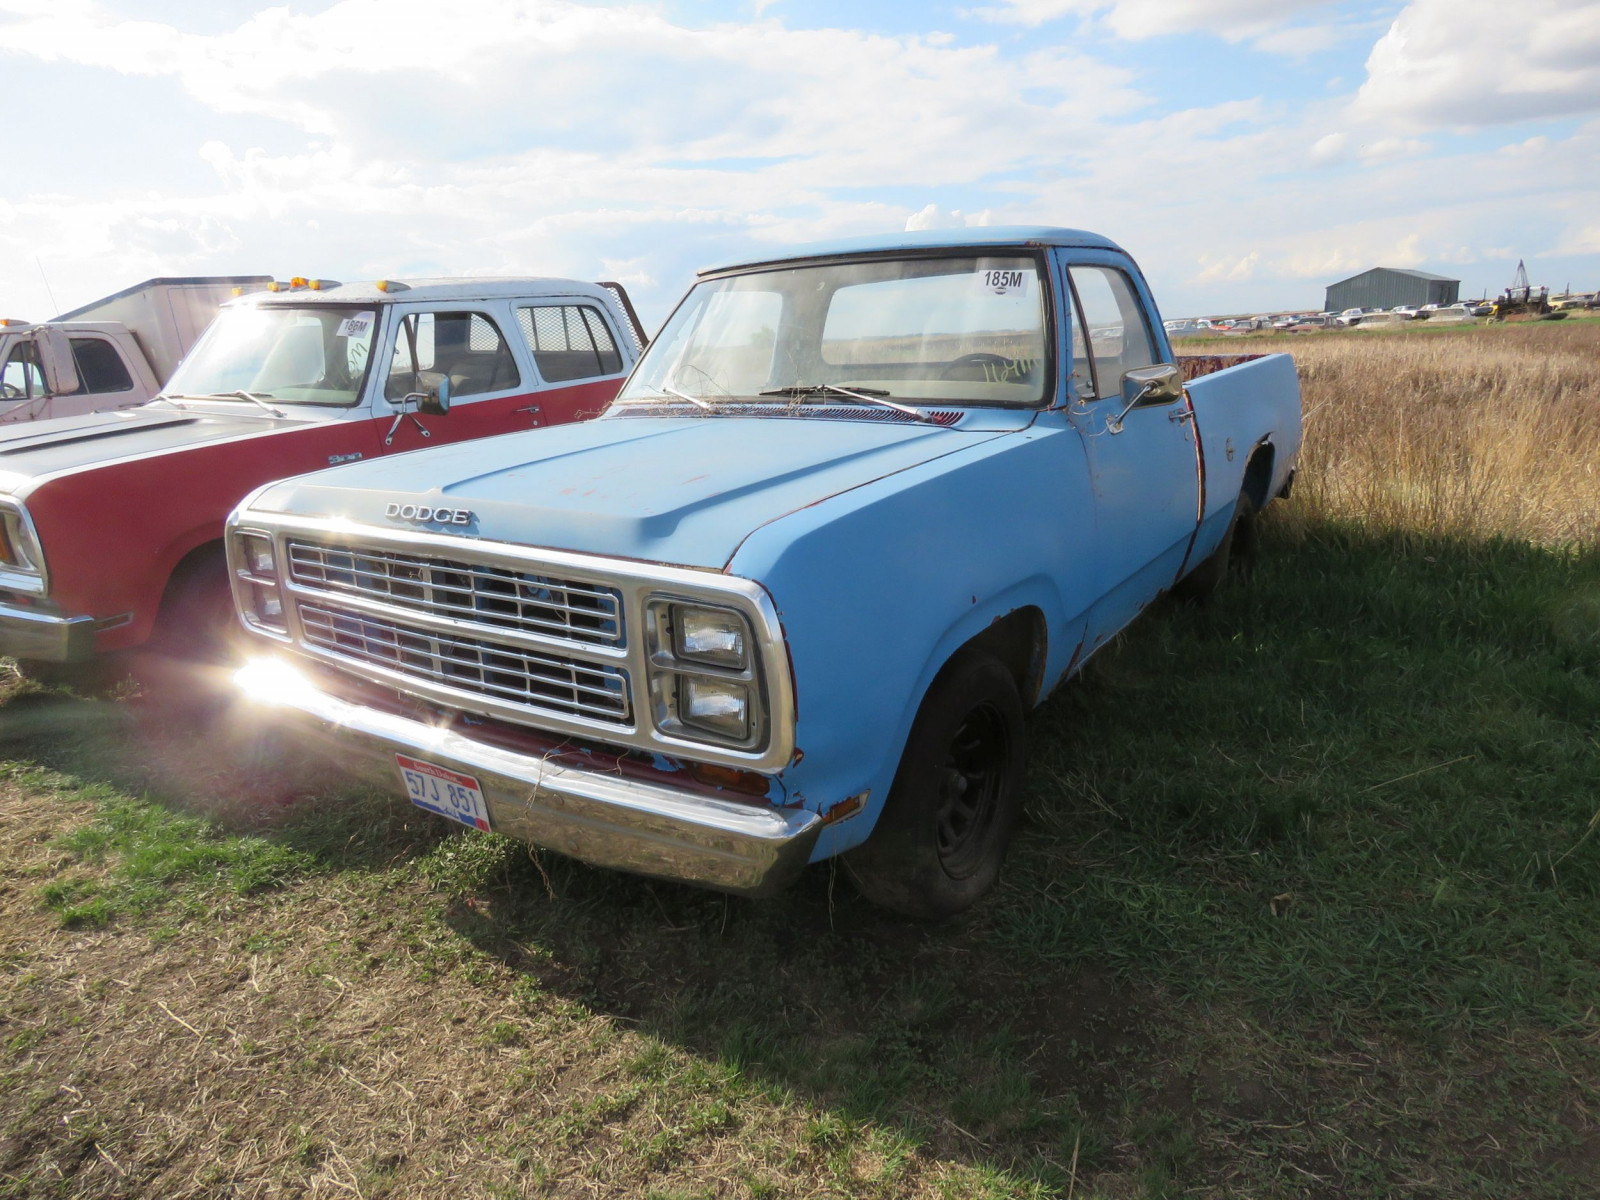 1979 Dodge Pickup - Image 1